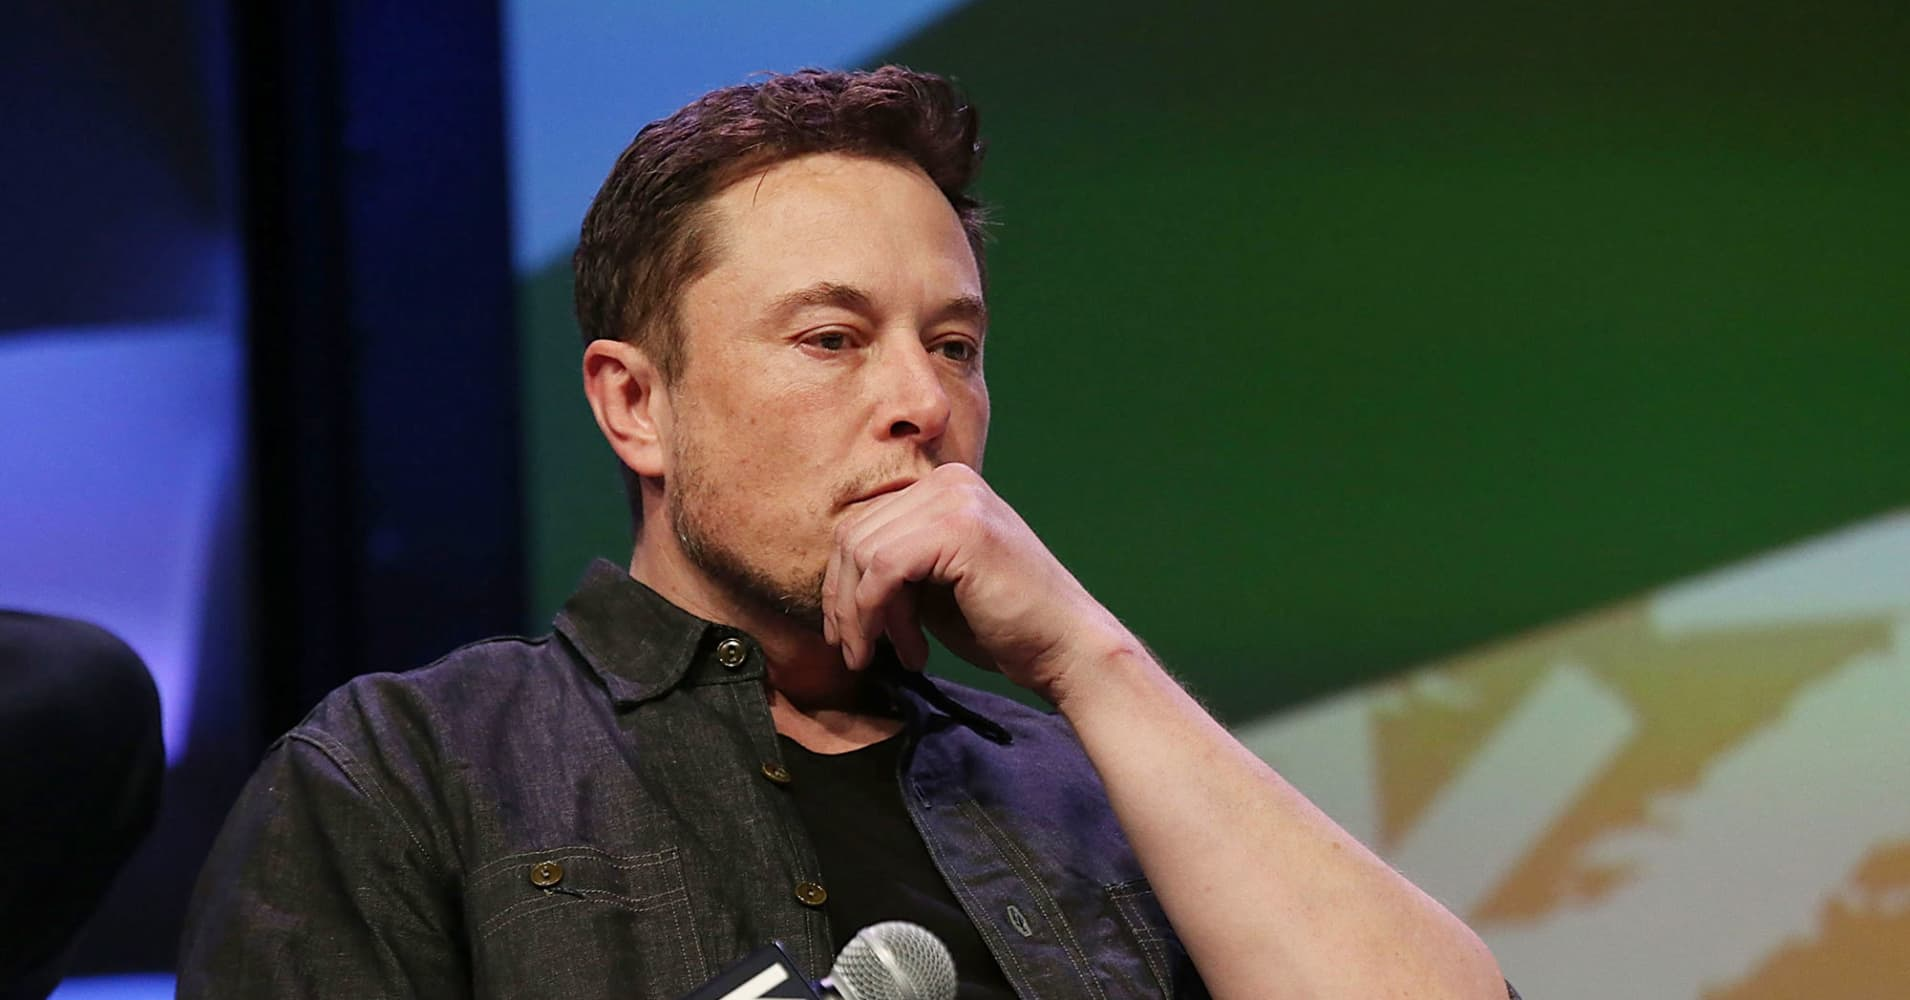 Short sellers pocket $510 million off Elon Musk's pot smoking interview